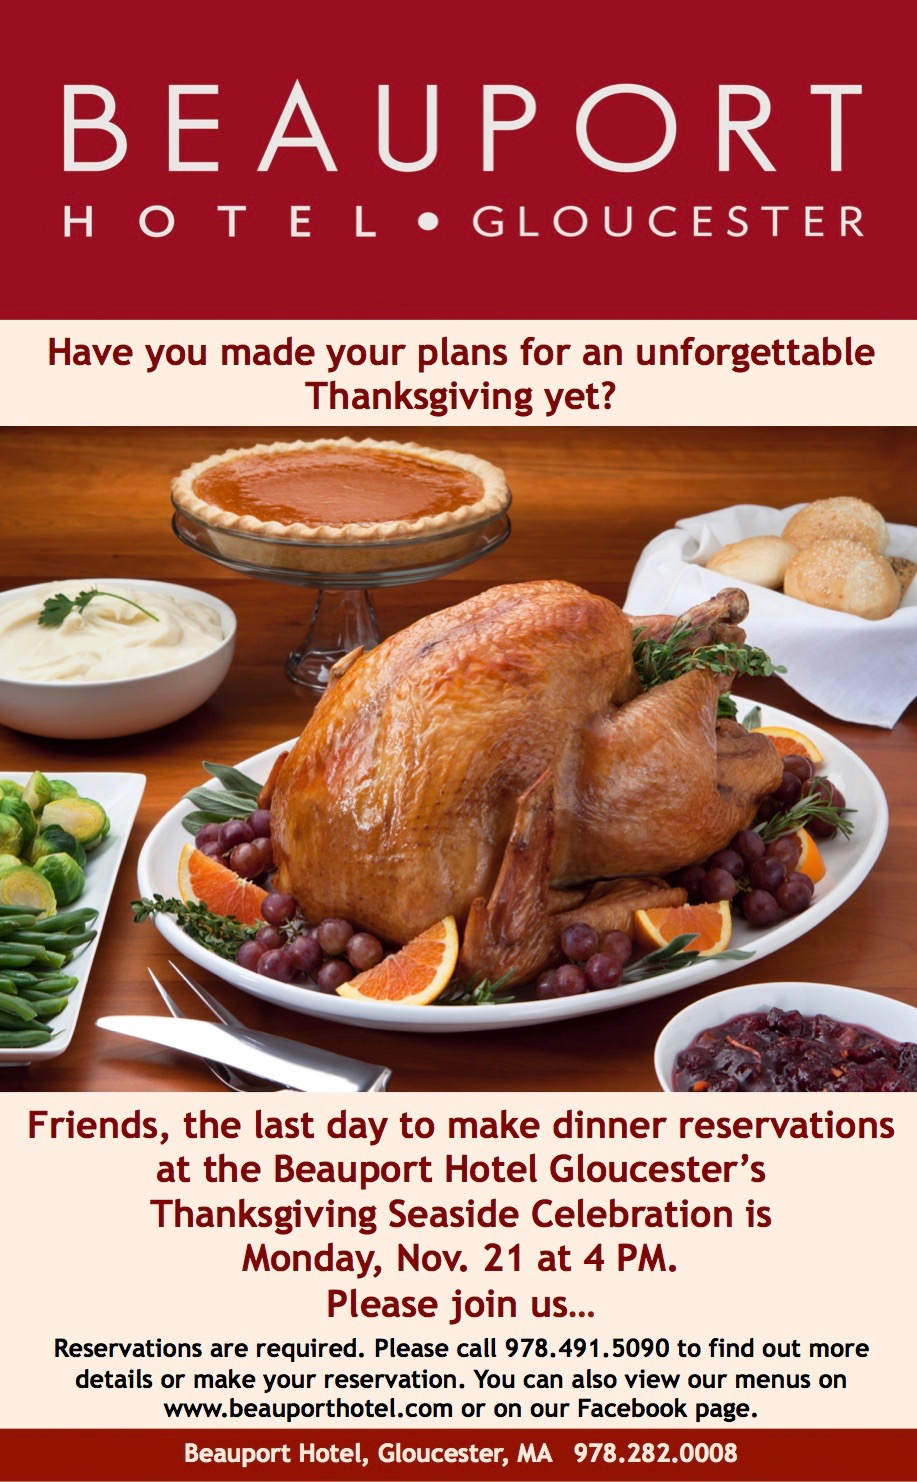 Forget the dinner reservations